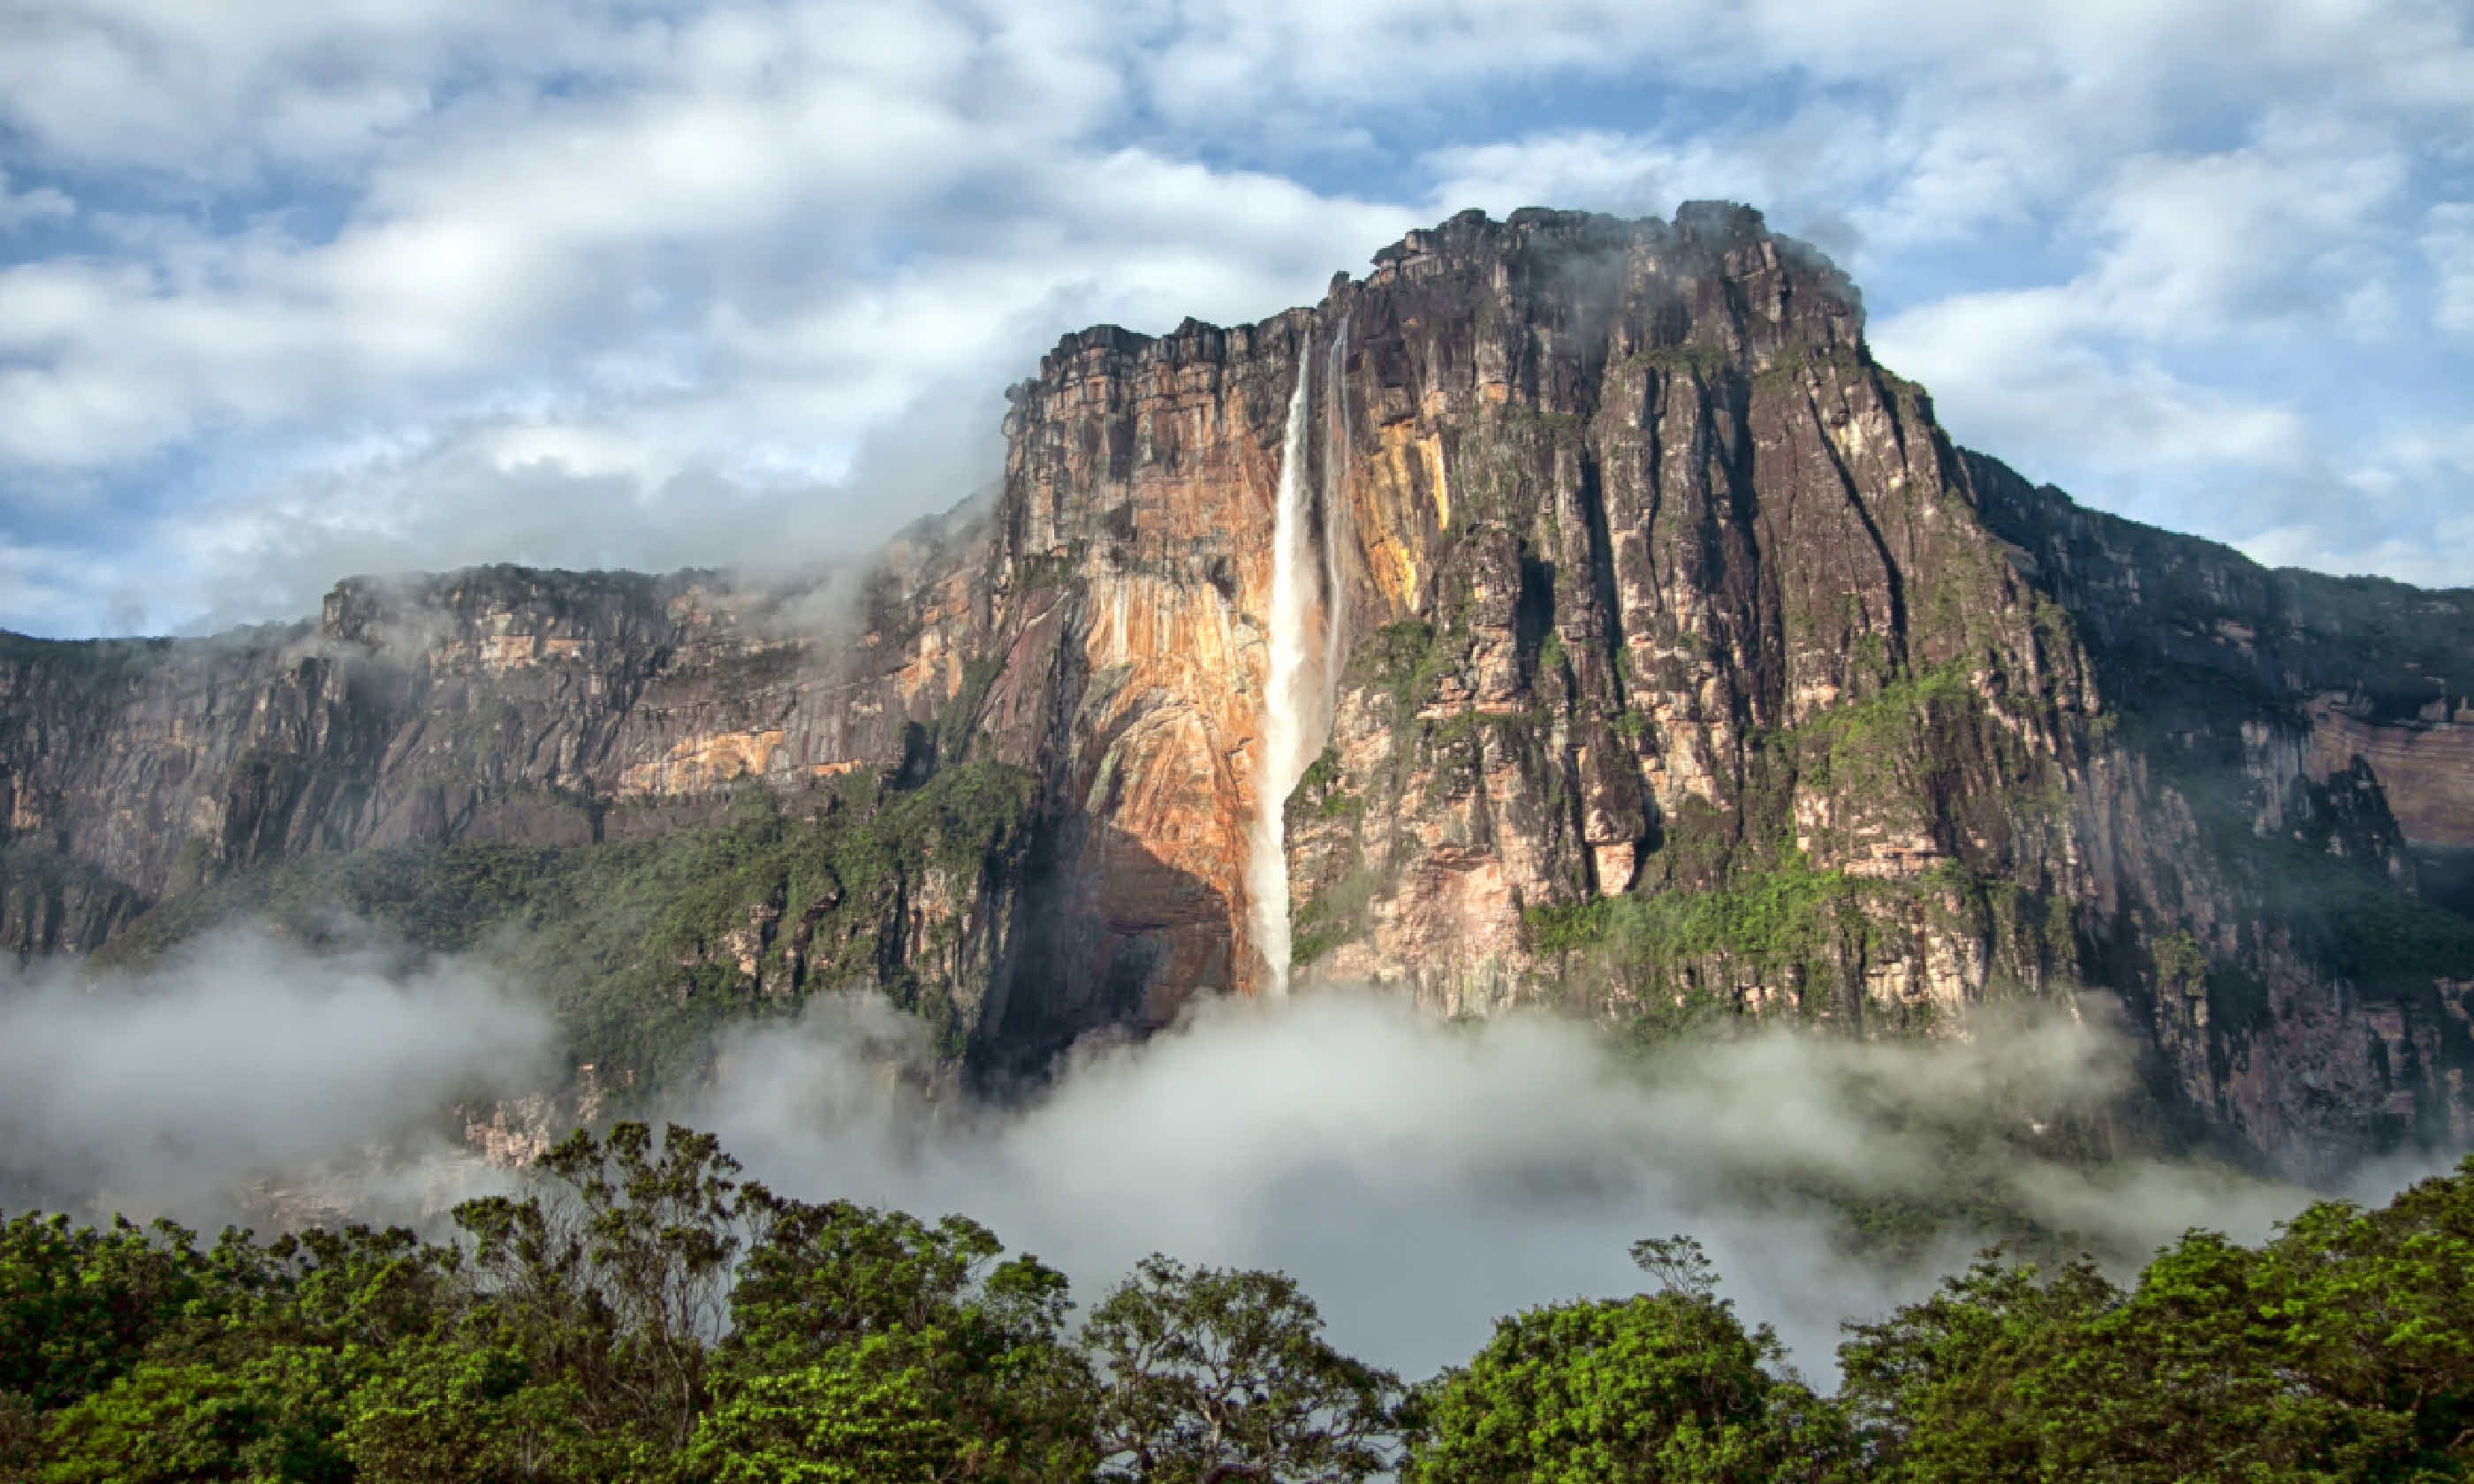 Salto Angel in the morning light (Shutterstock)